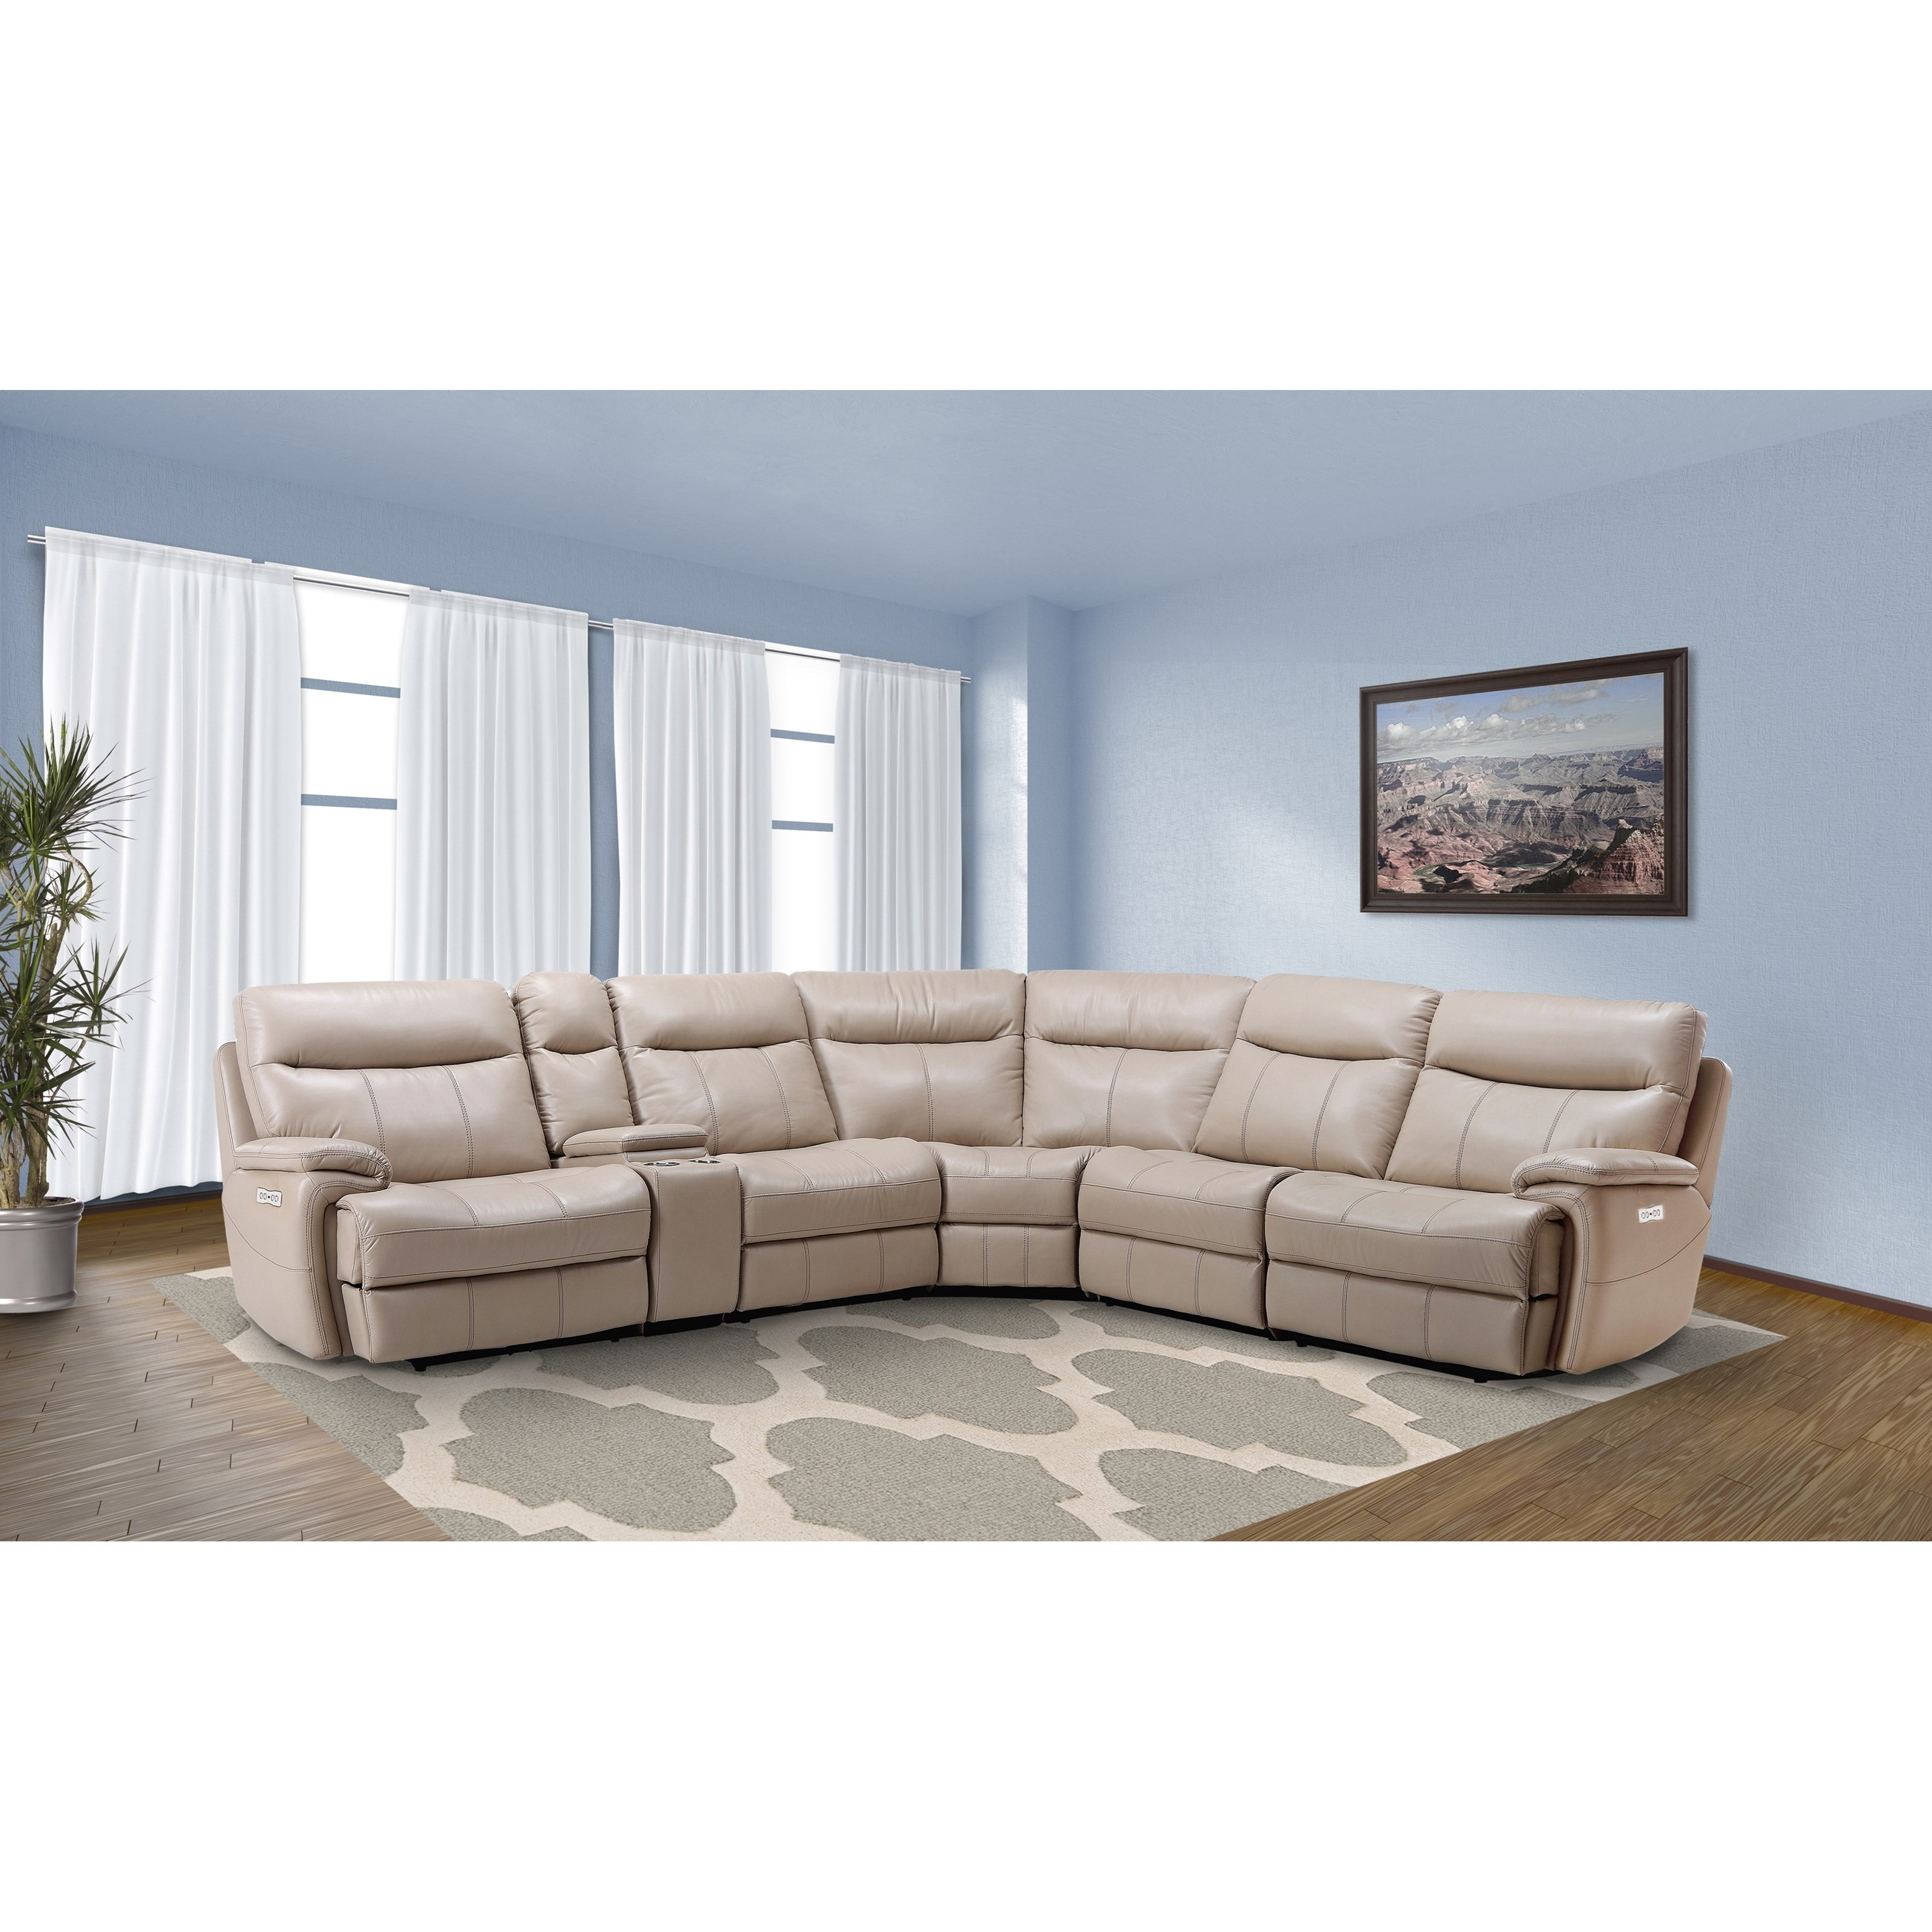 arlo casual reclining sectional sofa with storage console rotmans reclining sectional sofas. Black Bedroom Furniture Sets. Home Design Ideas